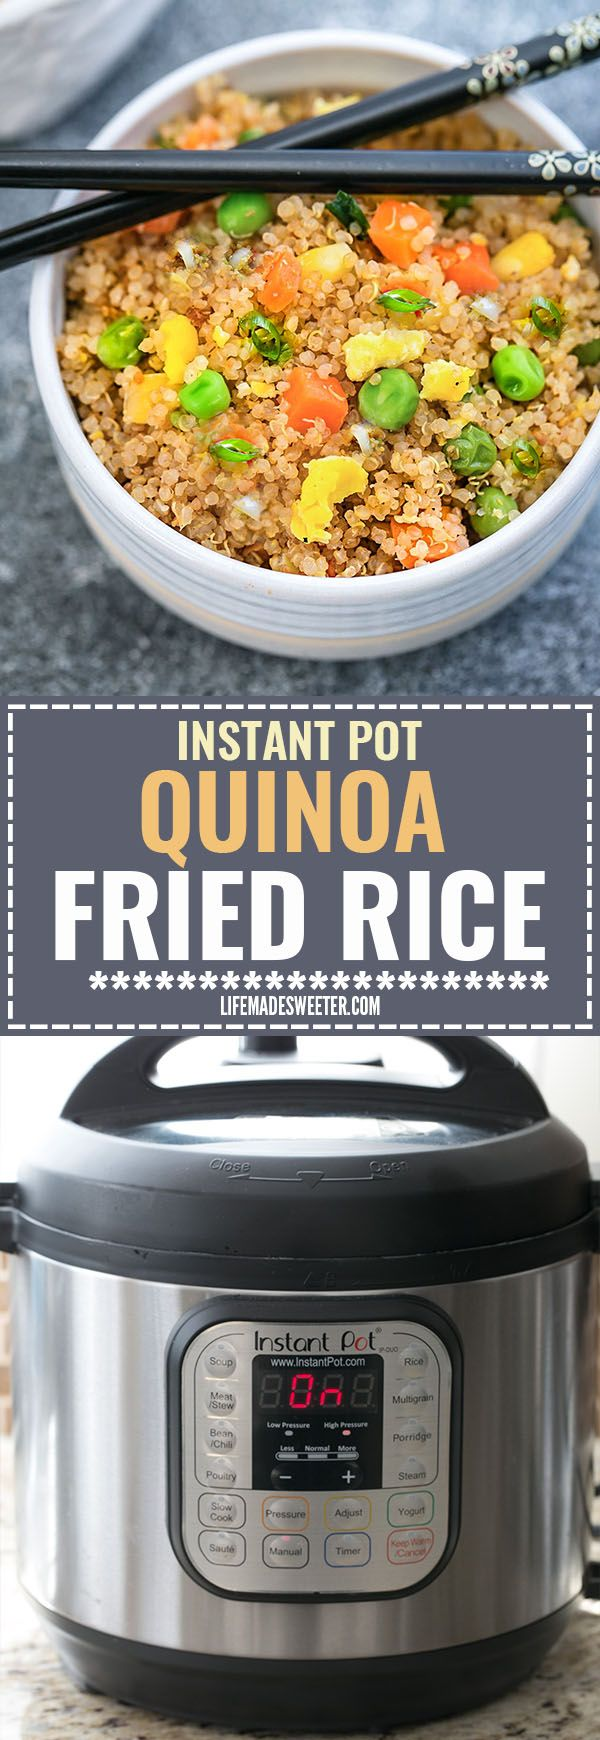 How To Cook Quinoa In A Rice Cooker Instant Pot Quinoa Fried Rice Makes A  Simple And Healthy Alternative To Traditional Fried Rice